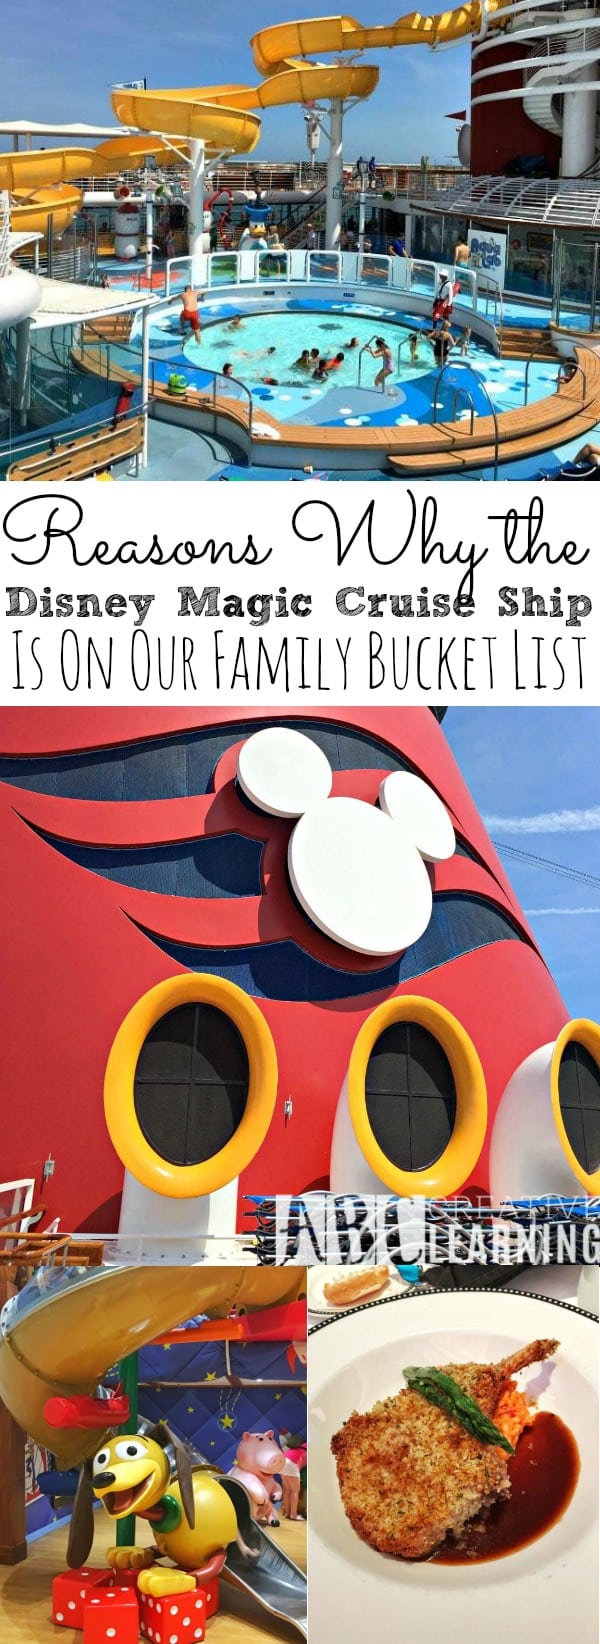 Does your family have a bucket list? So do we! Here are our 5 Reasons Why the Disney Magic Cruise Ship Is On Our Family Bucket List! - simplytodaylife.com #disneycruise #bucketlist #familytravels #familycruise #disney #cruise #disneymagiccruise